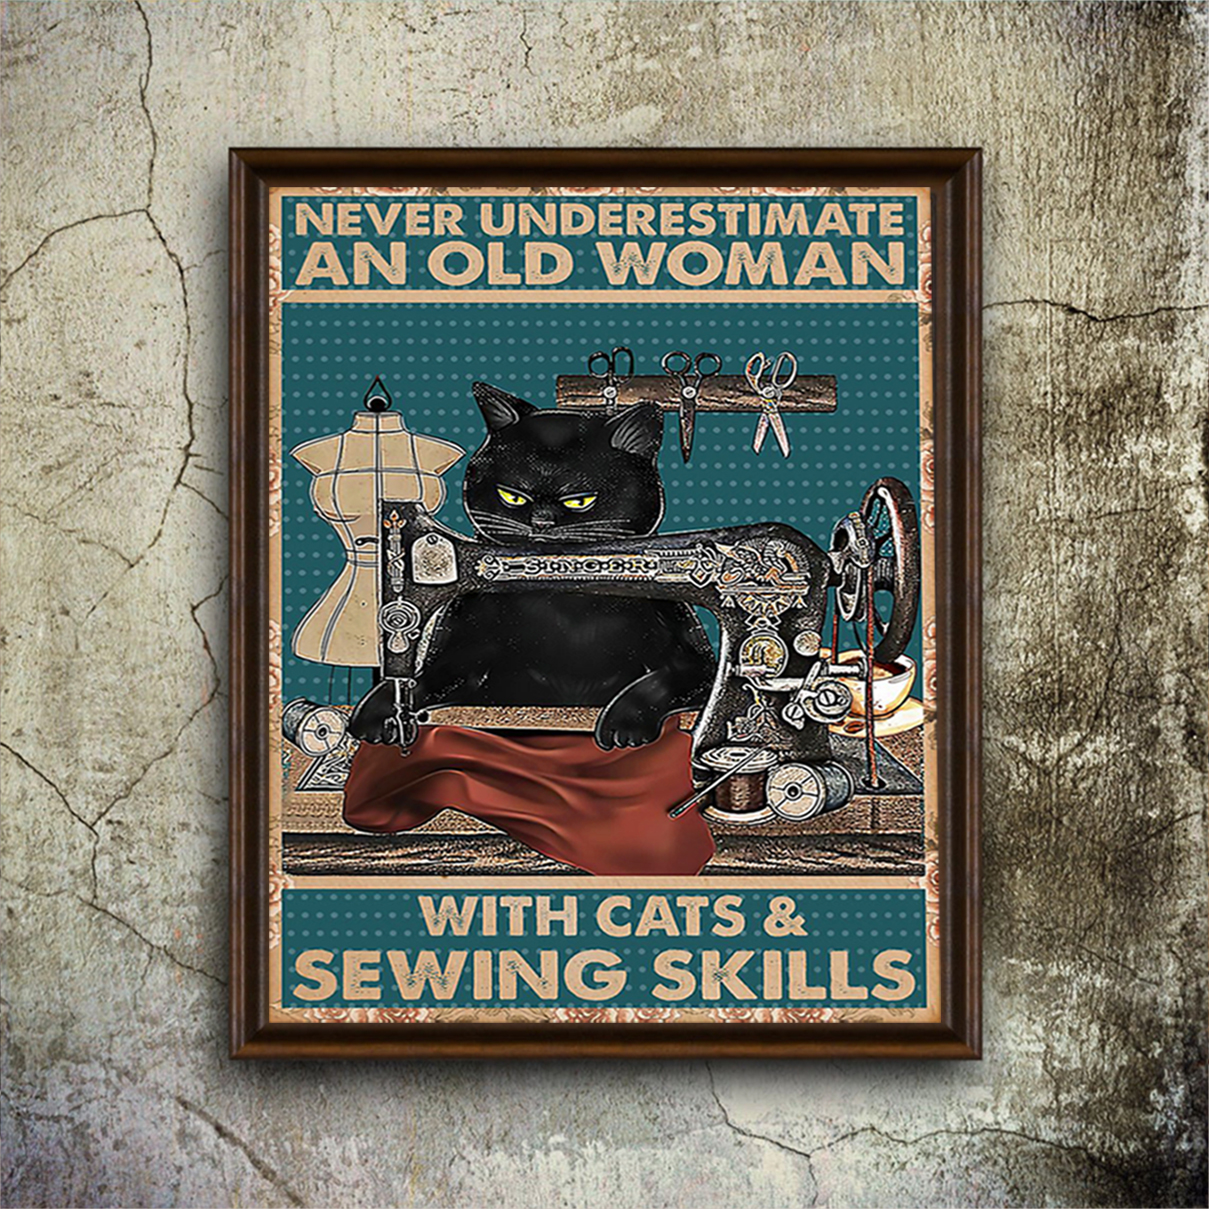 Never underestimate an old woman with cats and sewing skills poster A2